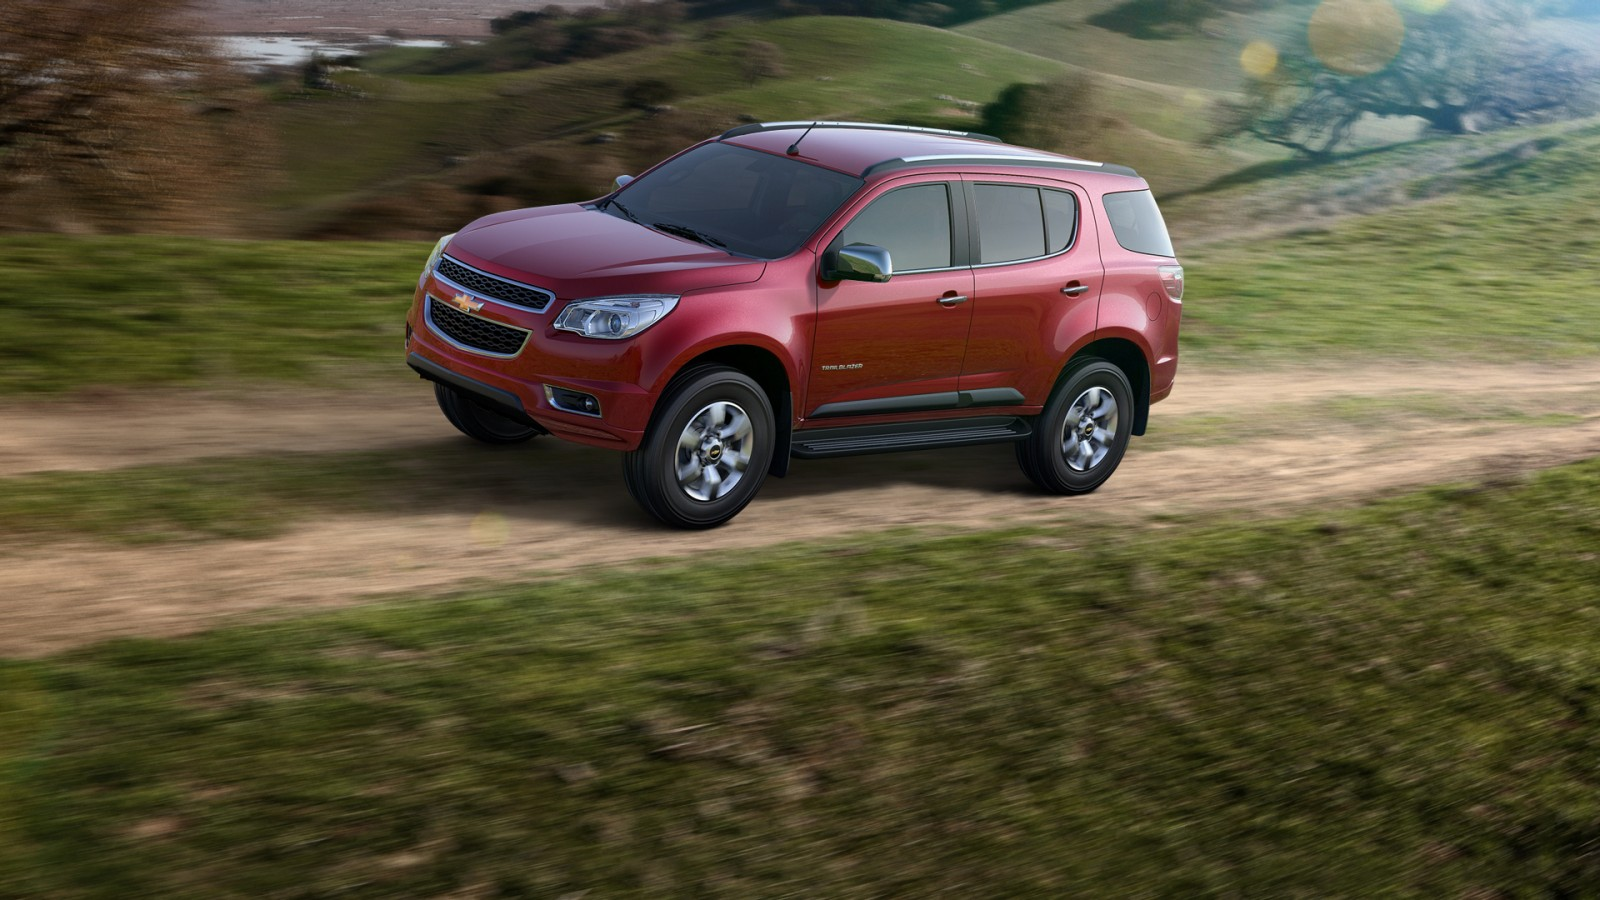 Chevrolet Trailblazer Exteriors Top View